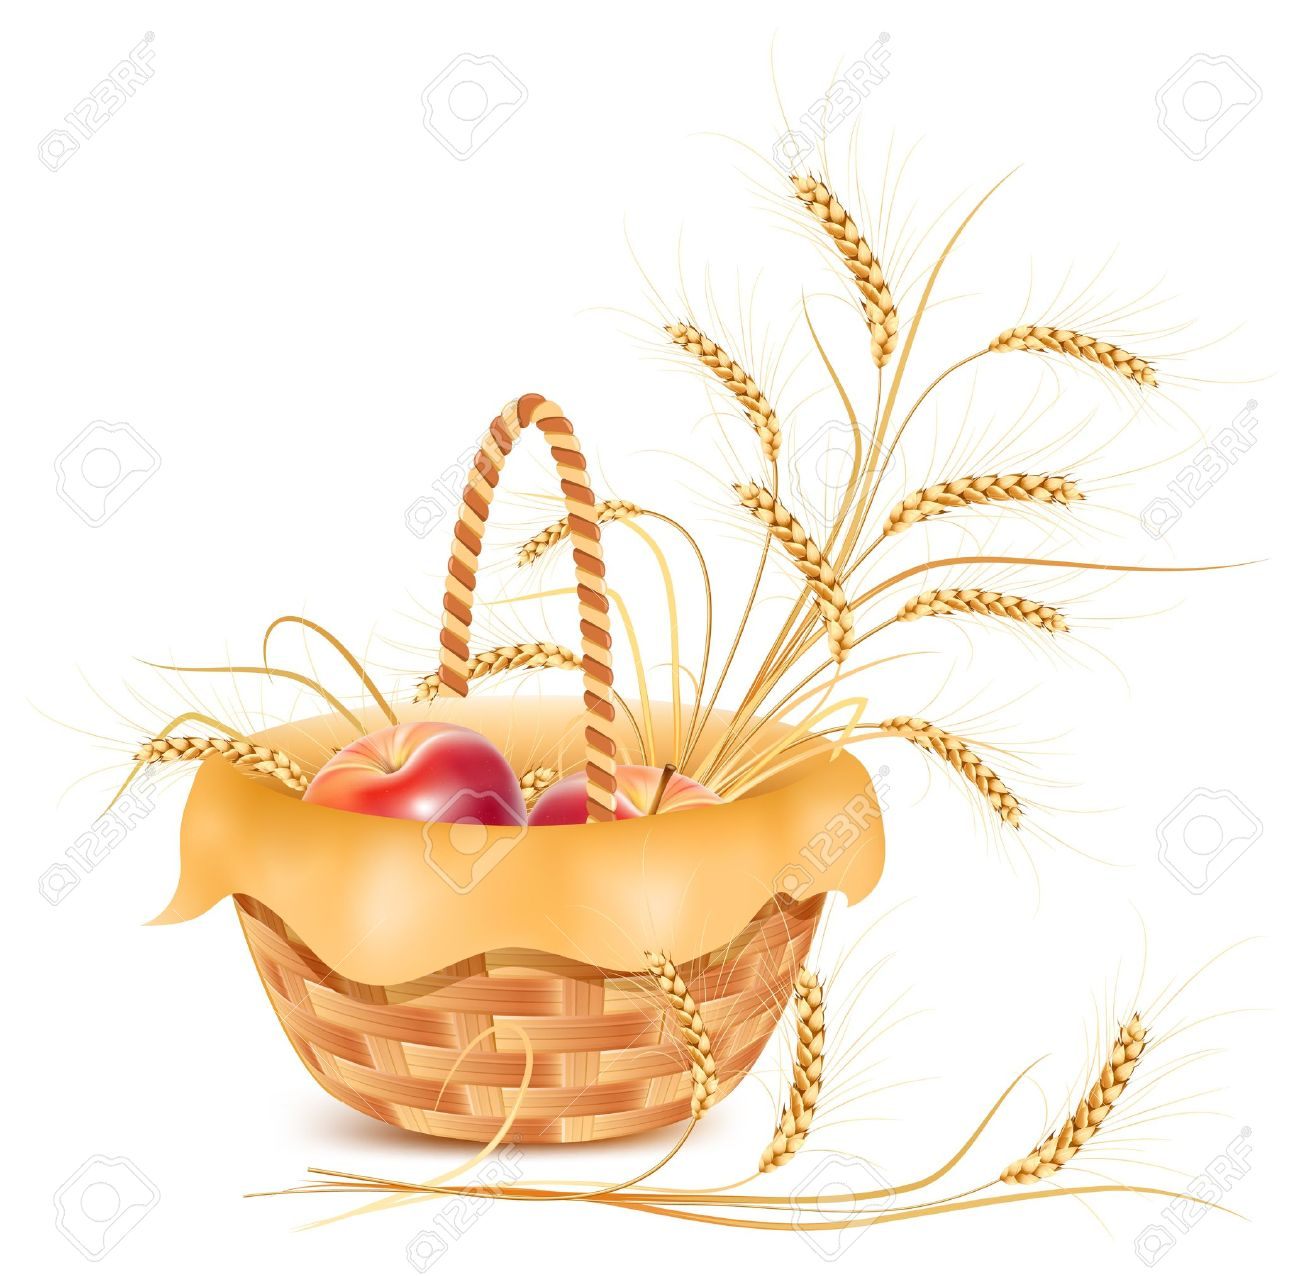 Vector. Ears Of Wheat And Apple In The Basket. Royalty Free.